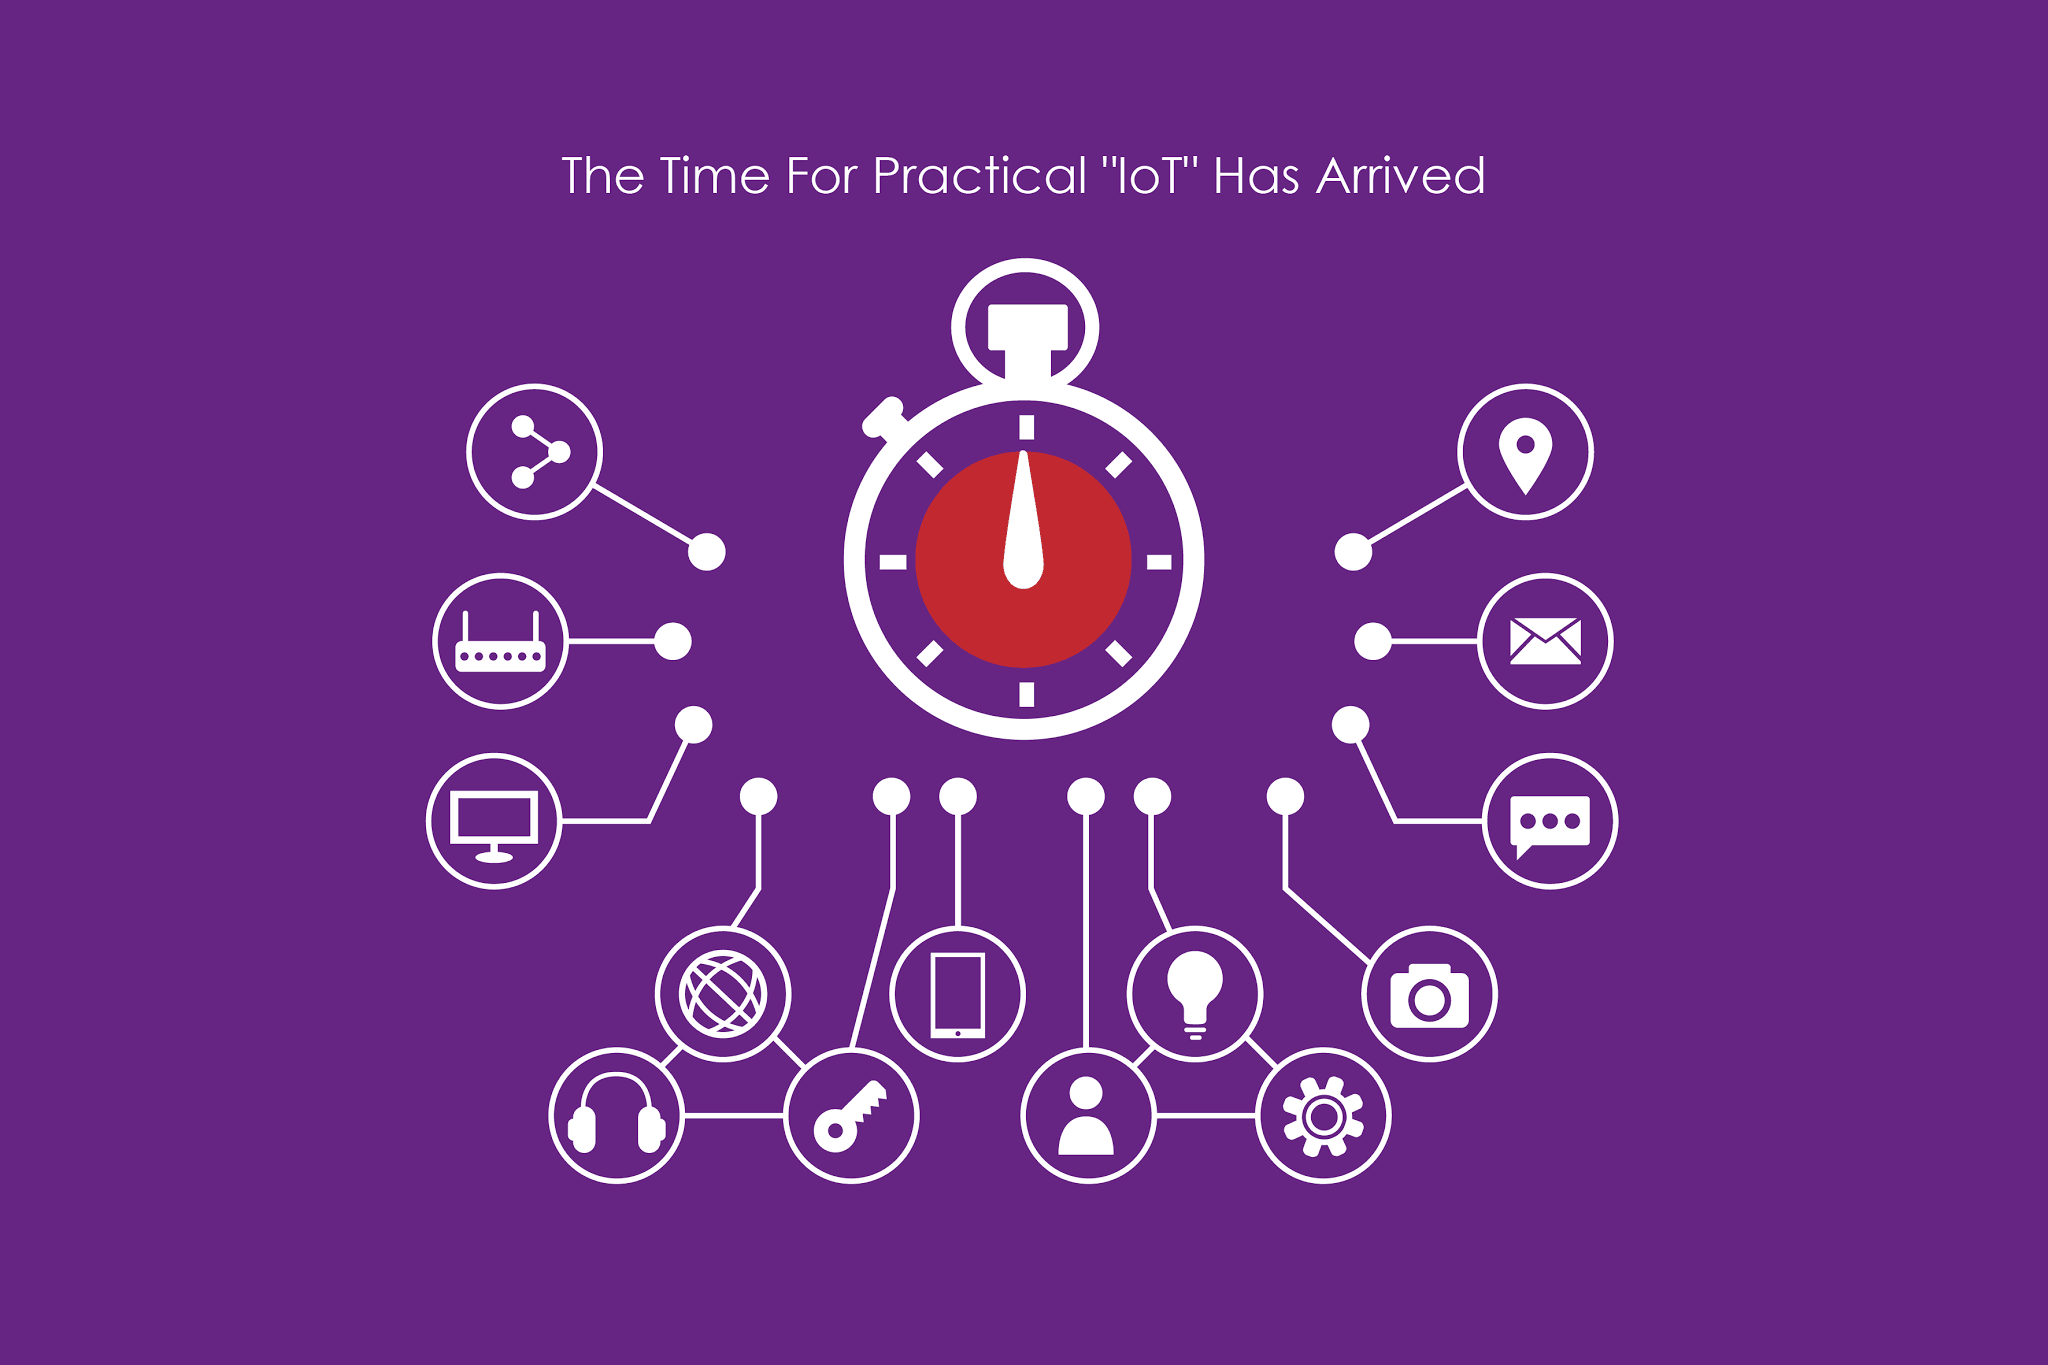 The time for practical IOT has arrived